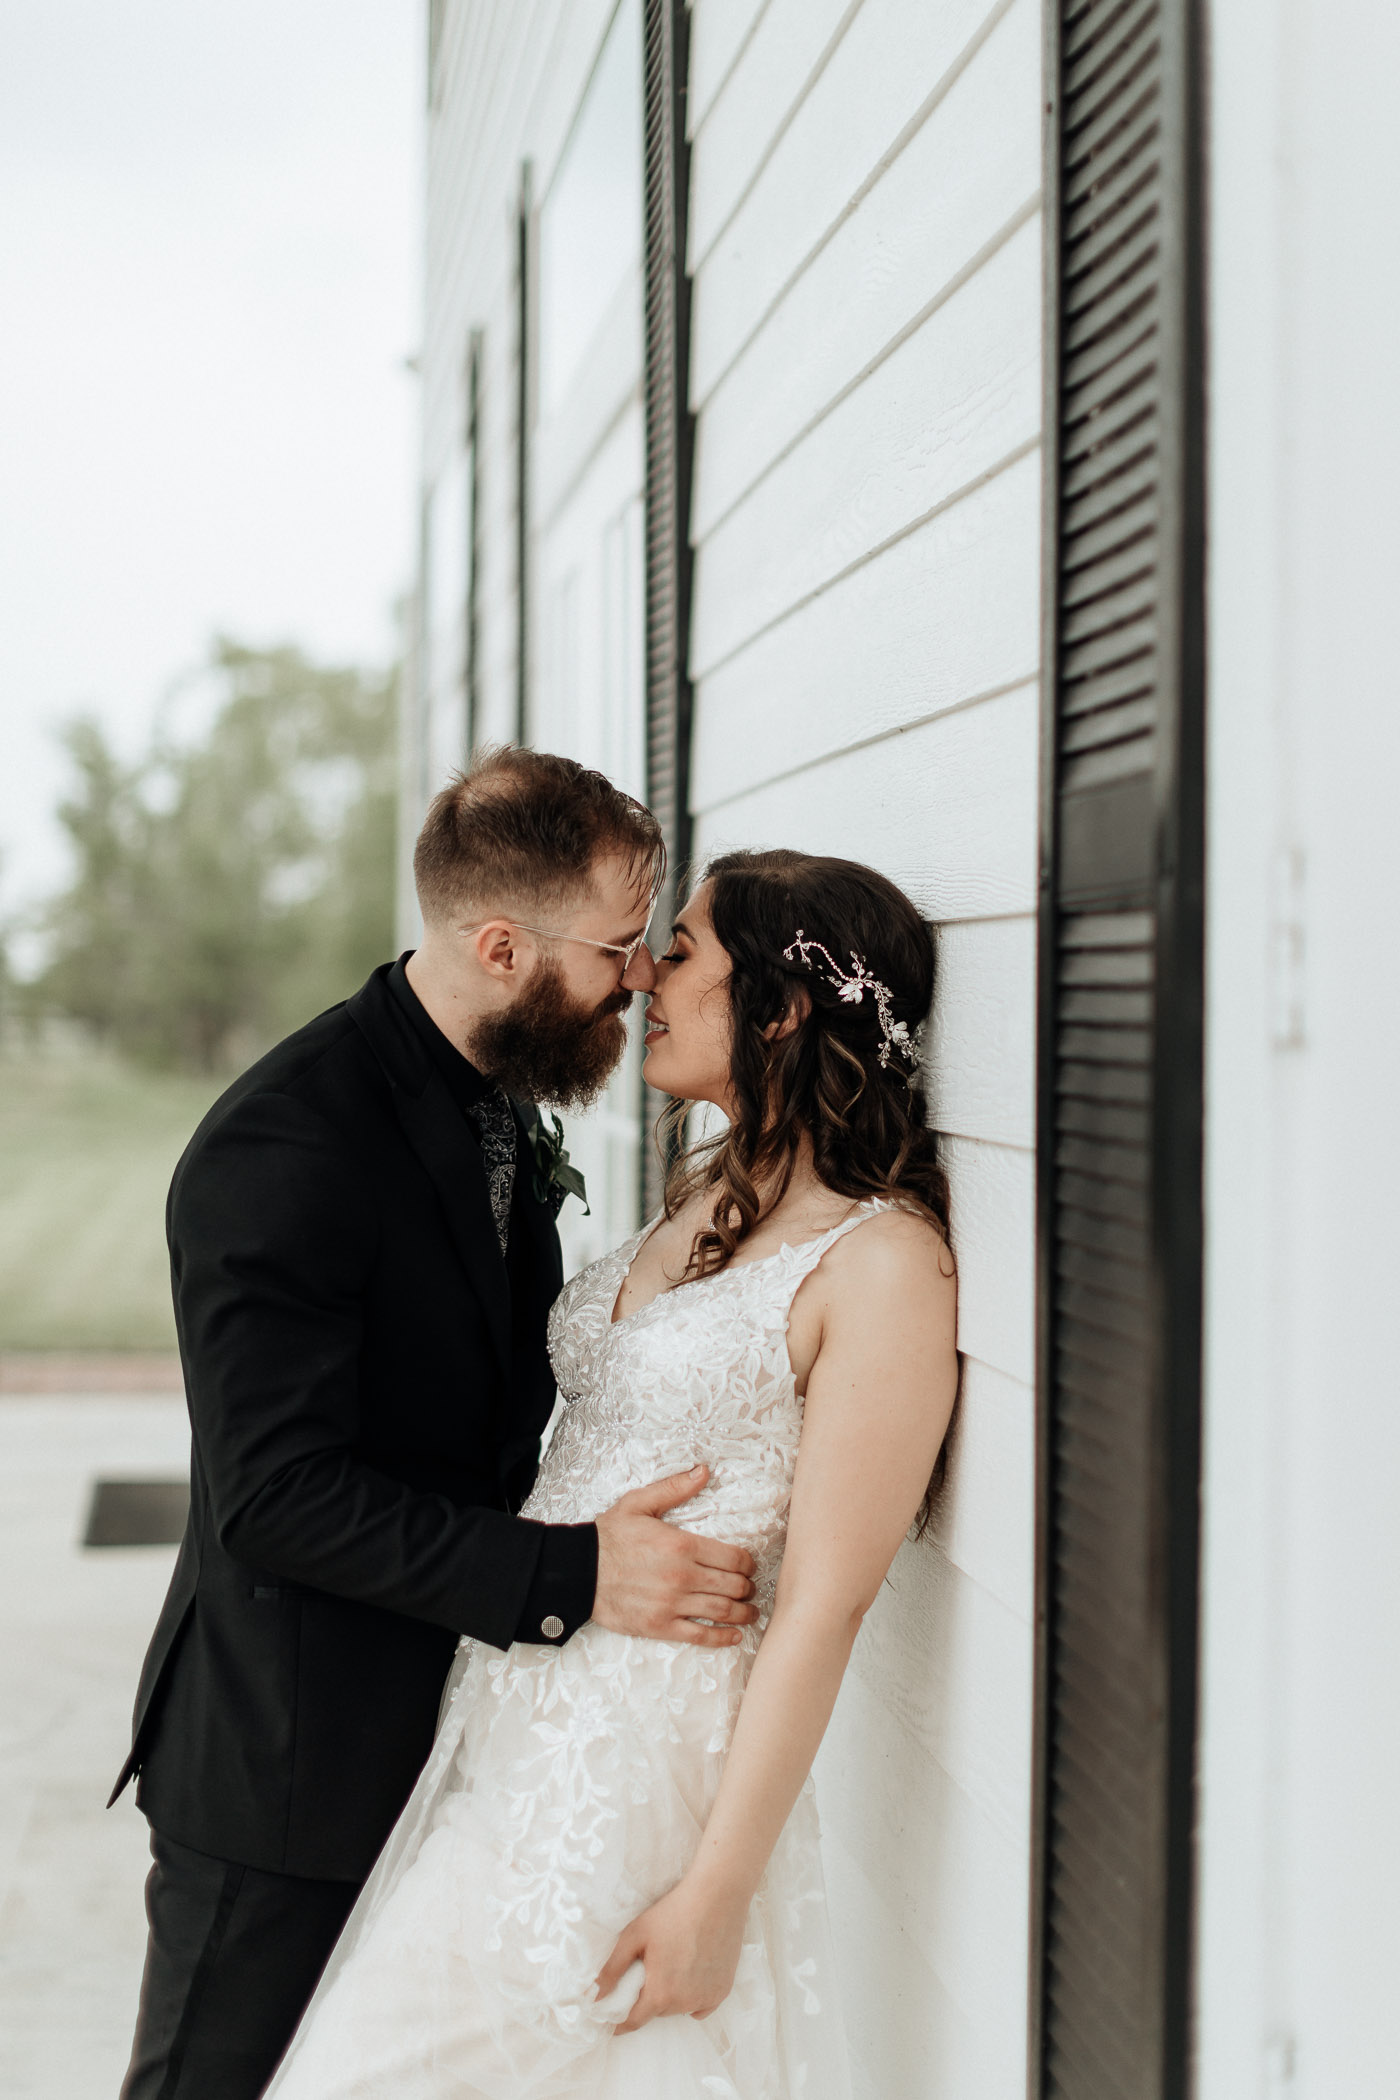 Bride and groom about to kiss in DFW